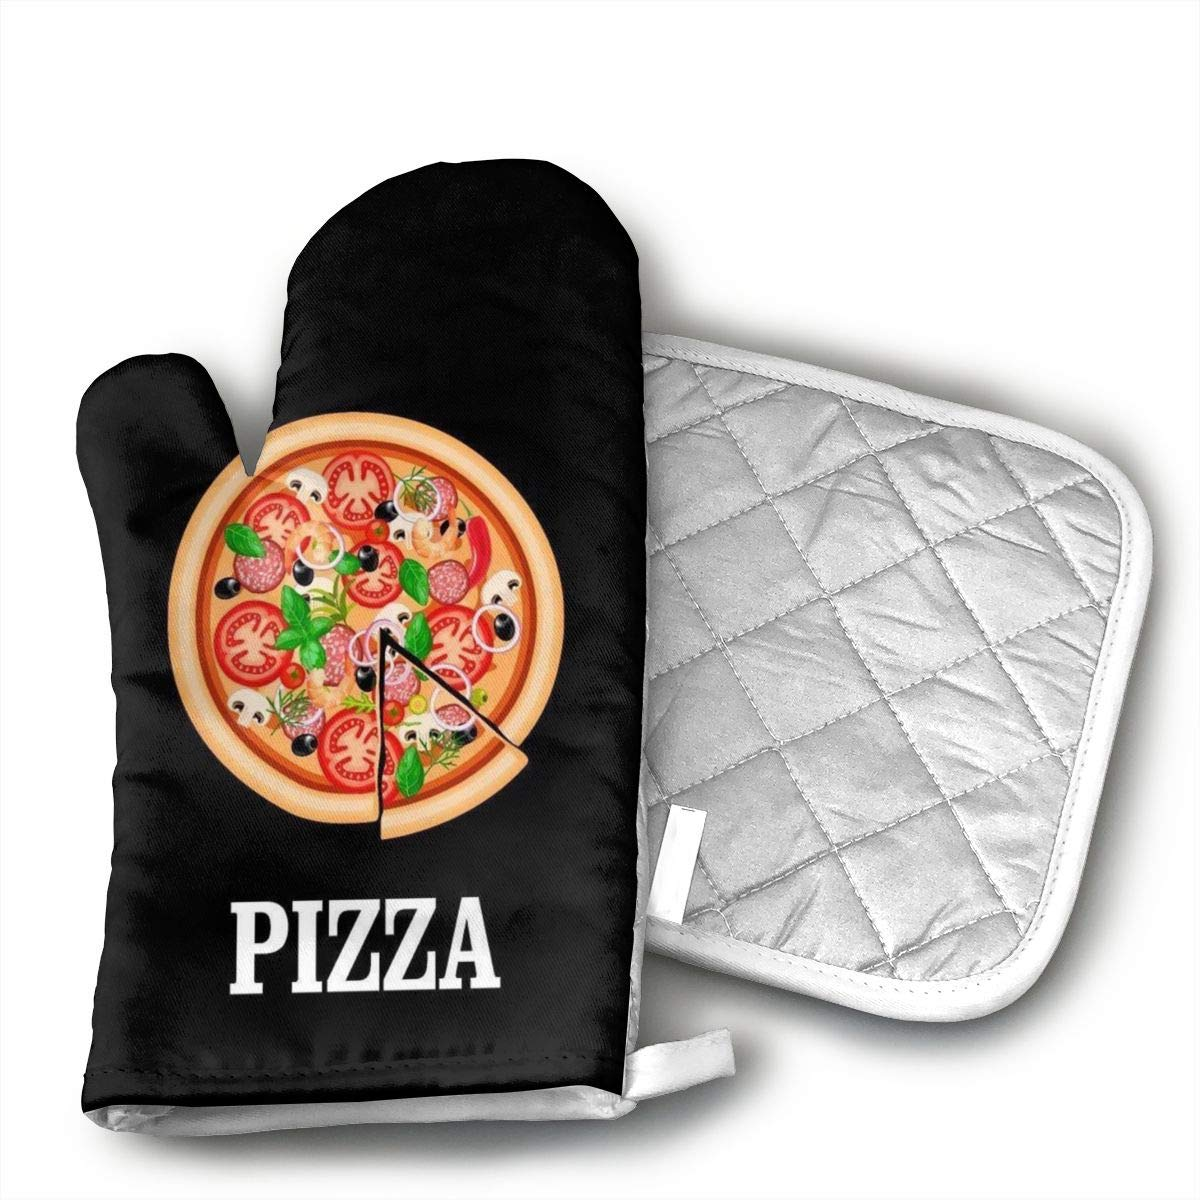 Wiqo9 A Pizza and A Nap Pizza Oven Mitts and Pot Holders Kitchen Mitten Cooking Gloves,Cooking, Baking, BBQ.